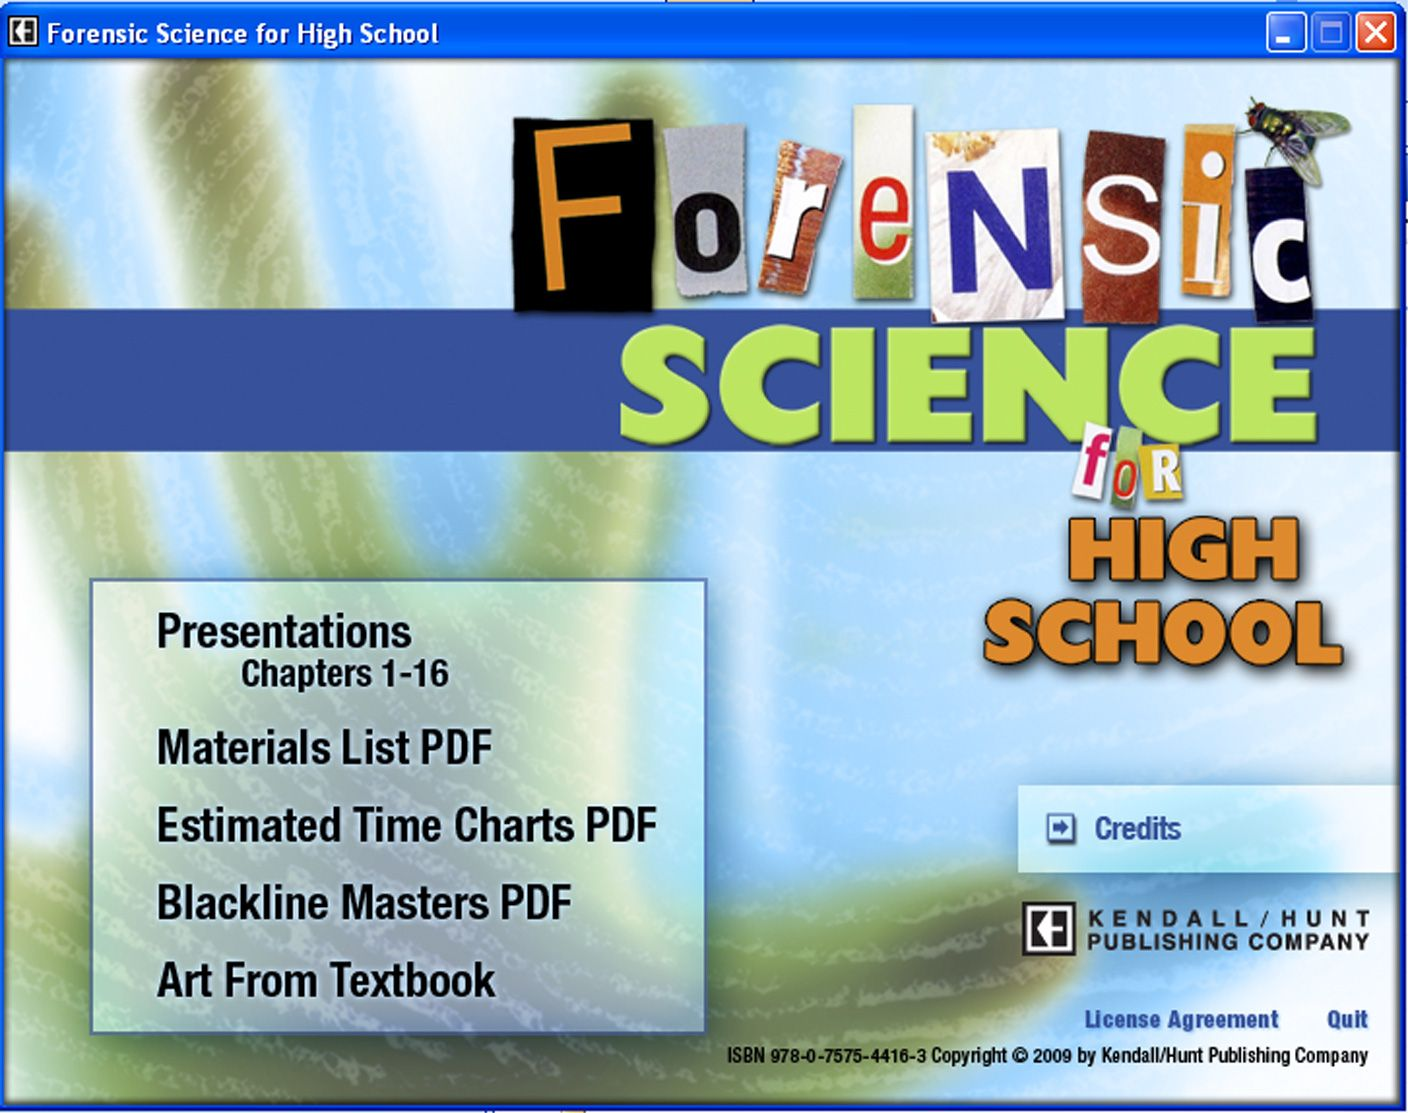 620 best Teaching Forensics images on Pinterest | Forensic science ...